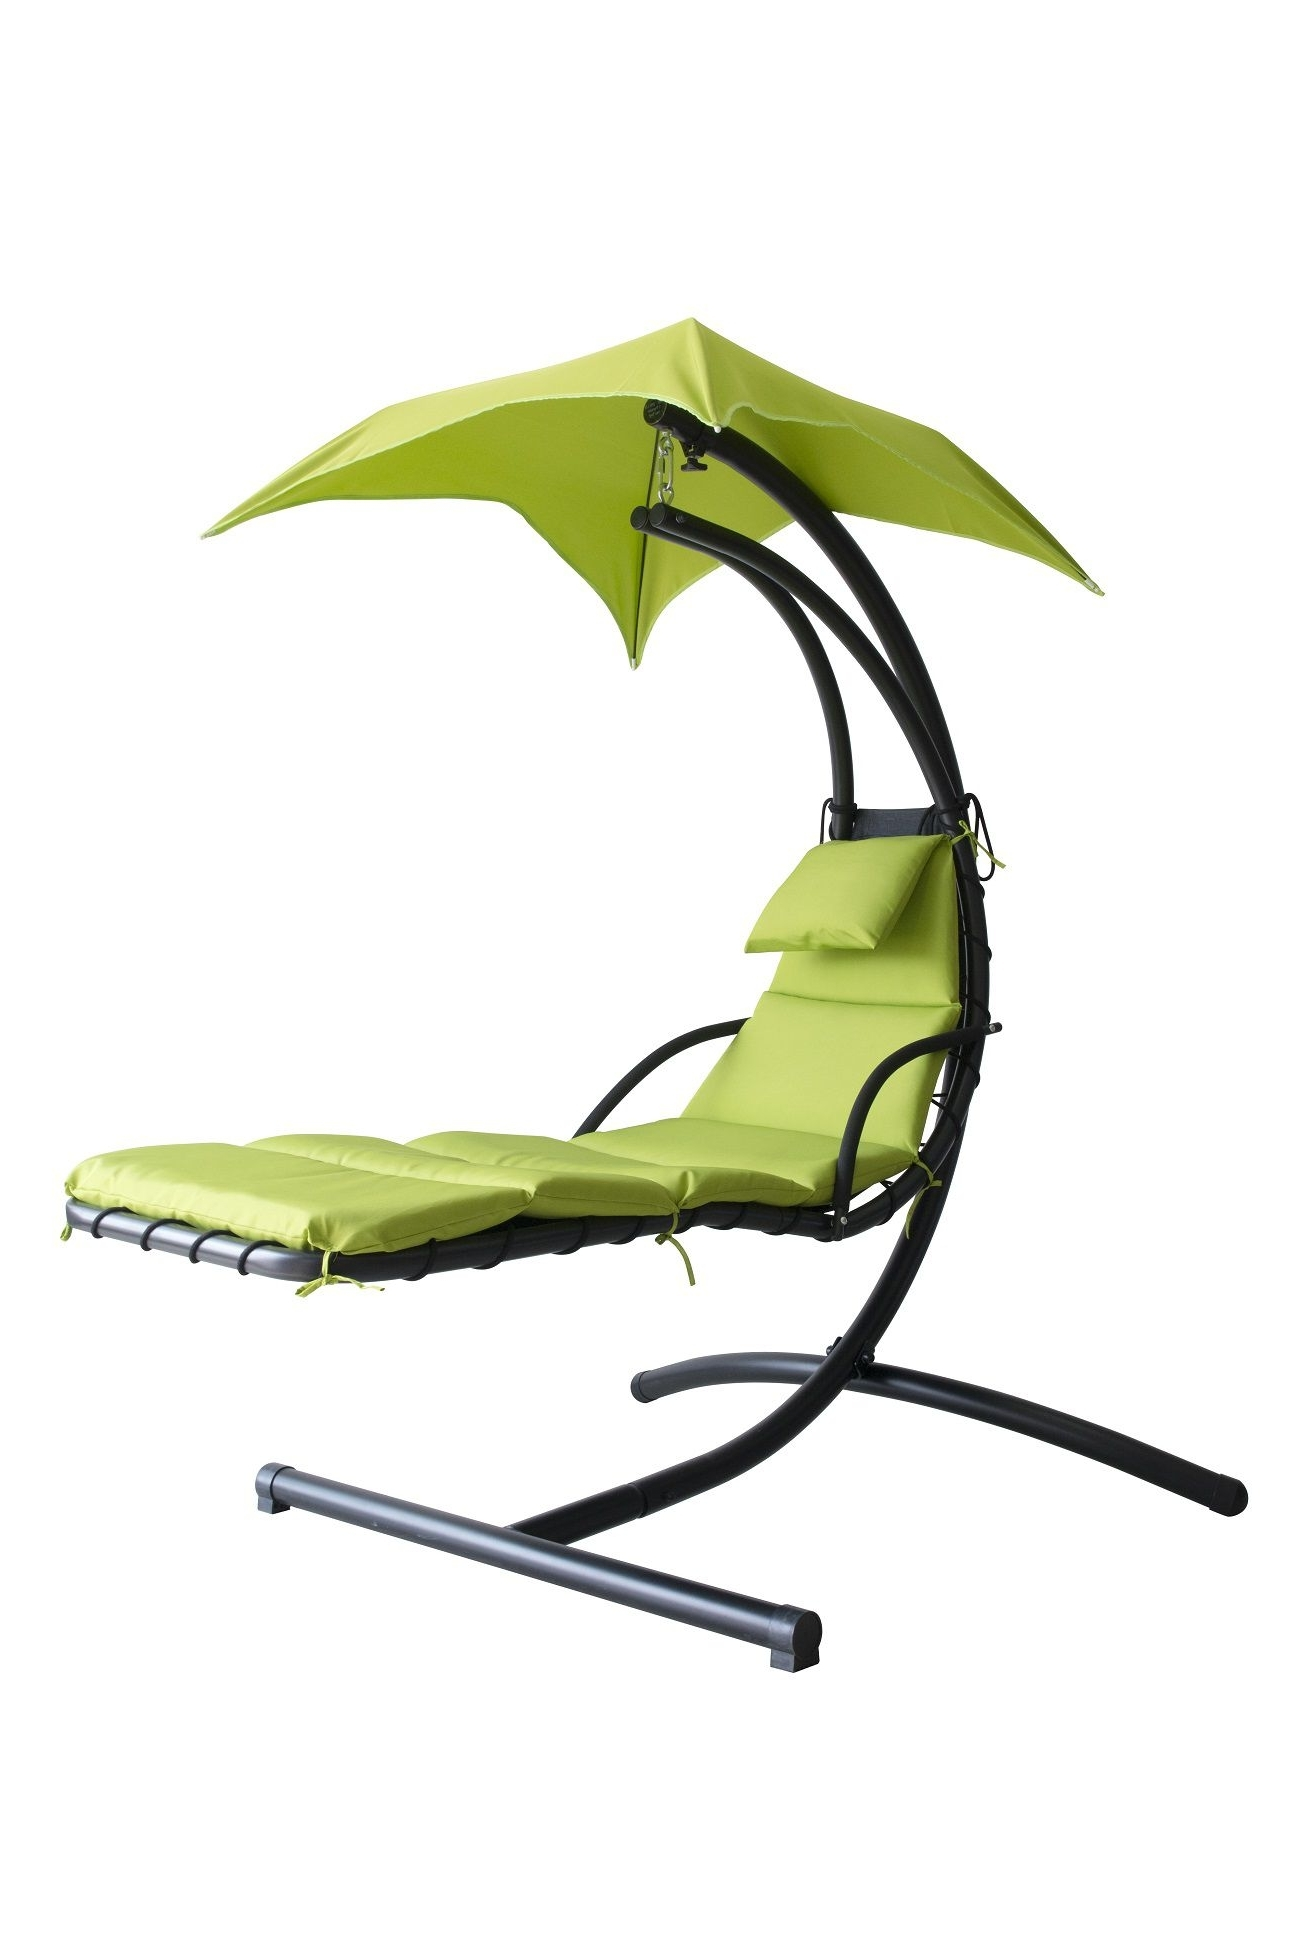 Most Recently Released Hanging Chaise Lounge Chairs Intended For Amazing Hanging Chaise Lounge Chair Hammock Swing Canopy Glider (View 14 of 15)